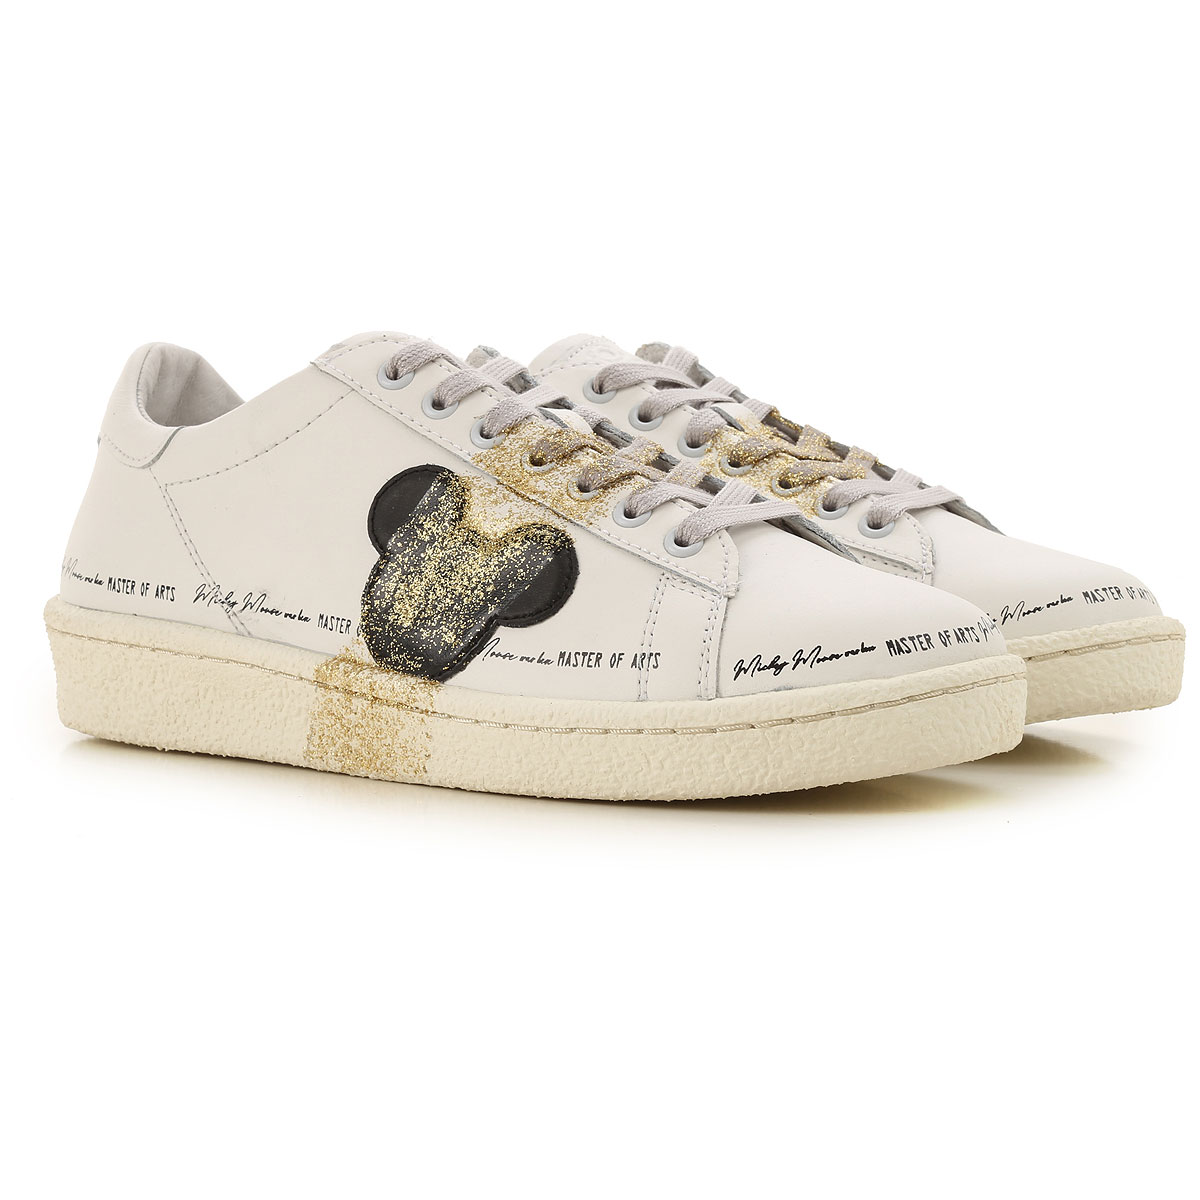 Moa Master of Arts Sneakers for Women On Sale, White, Leather, 2019, 7 8 9